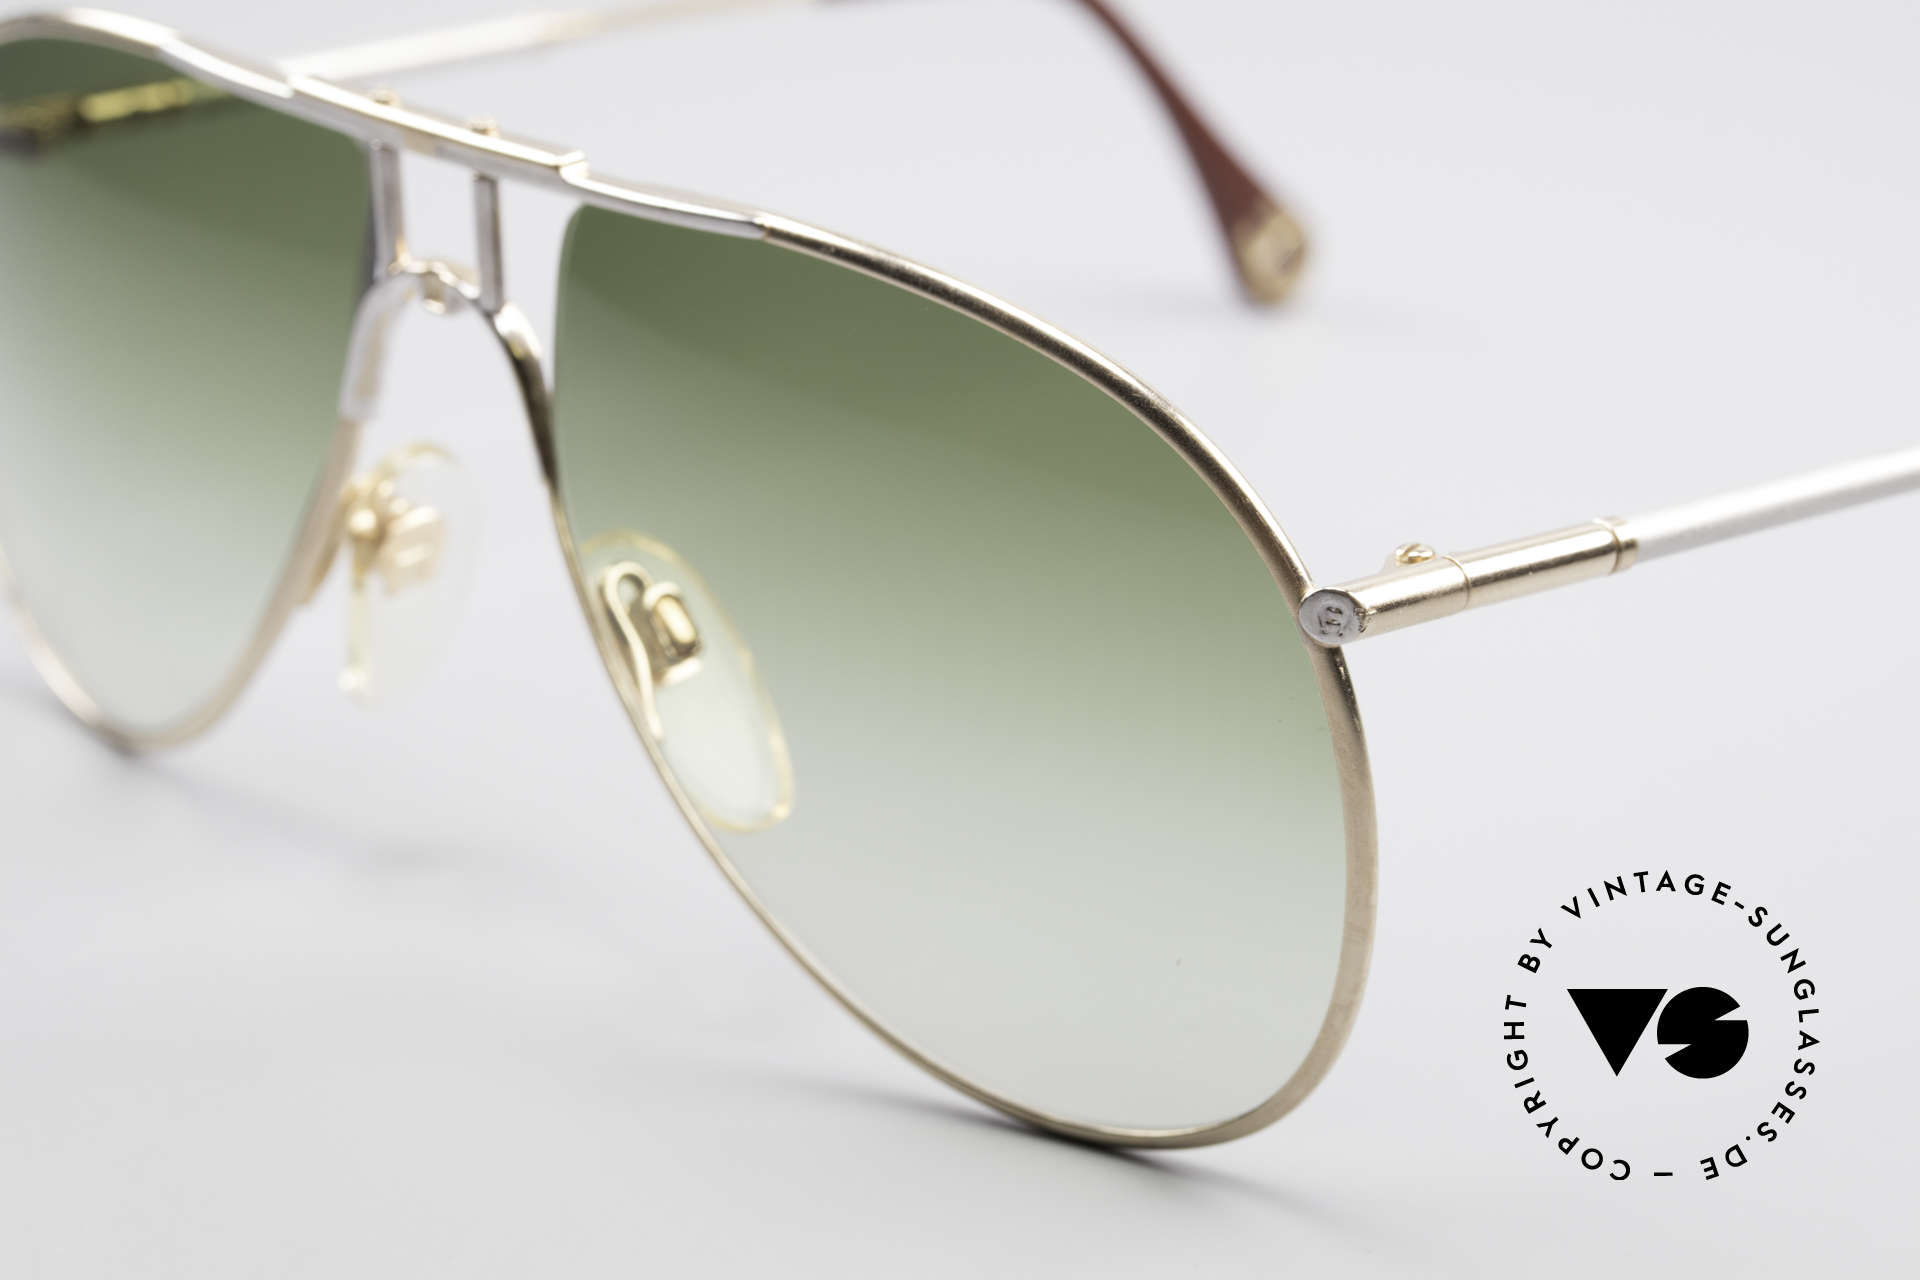 Aigner EA4 80's Luxury Sunglasses Men, outstanding craftsmanship; frame with serial no. '8048', Made for Men